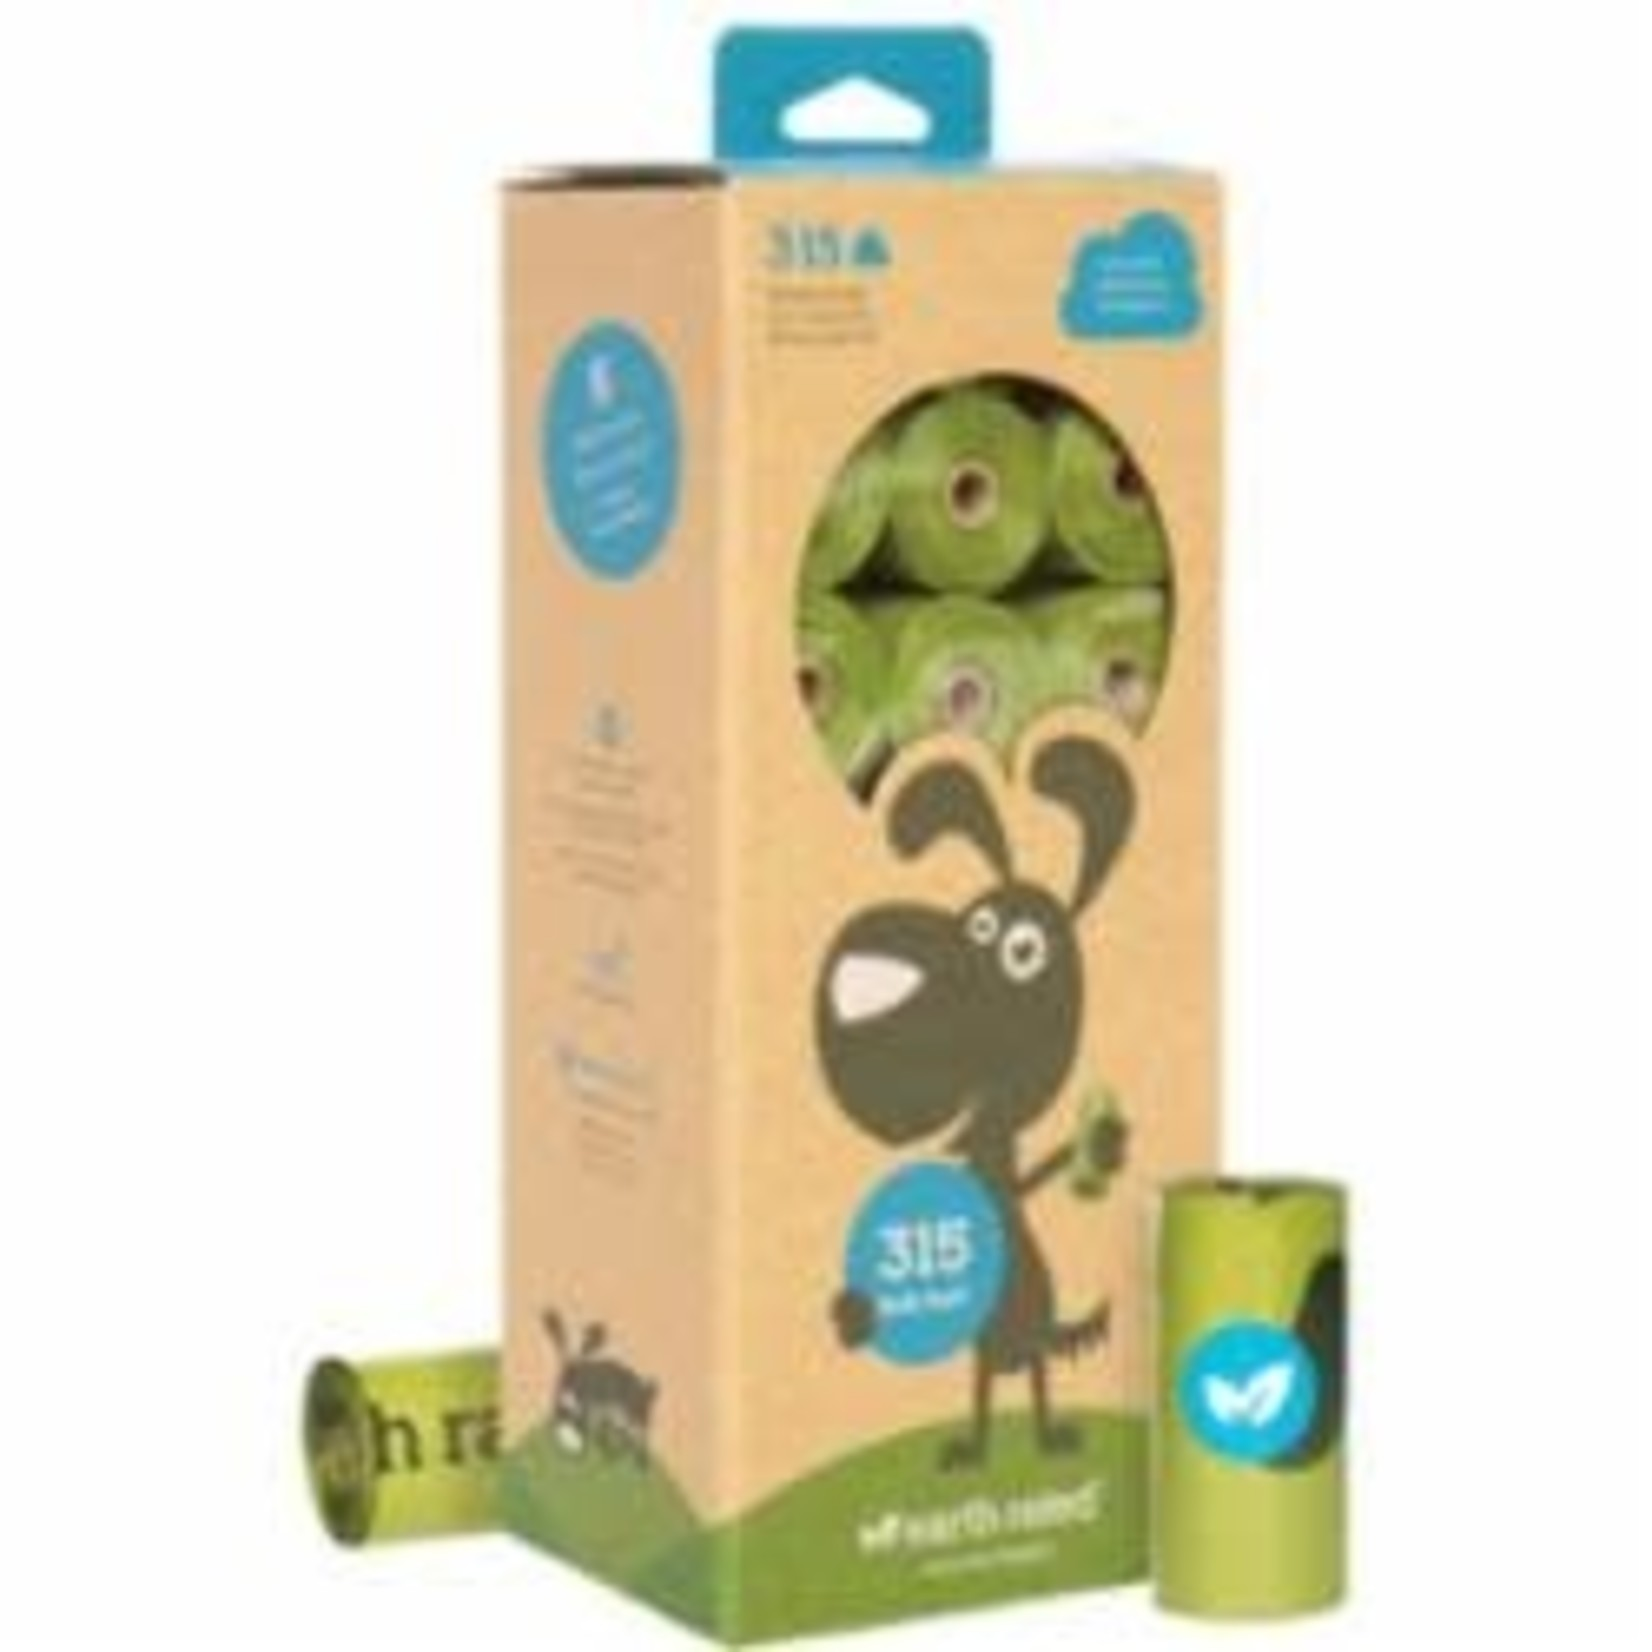 Earth Rated Earth Rated Bio Poop Bag Rolls Unscented 21 Pack